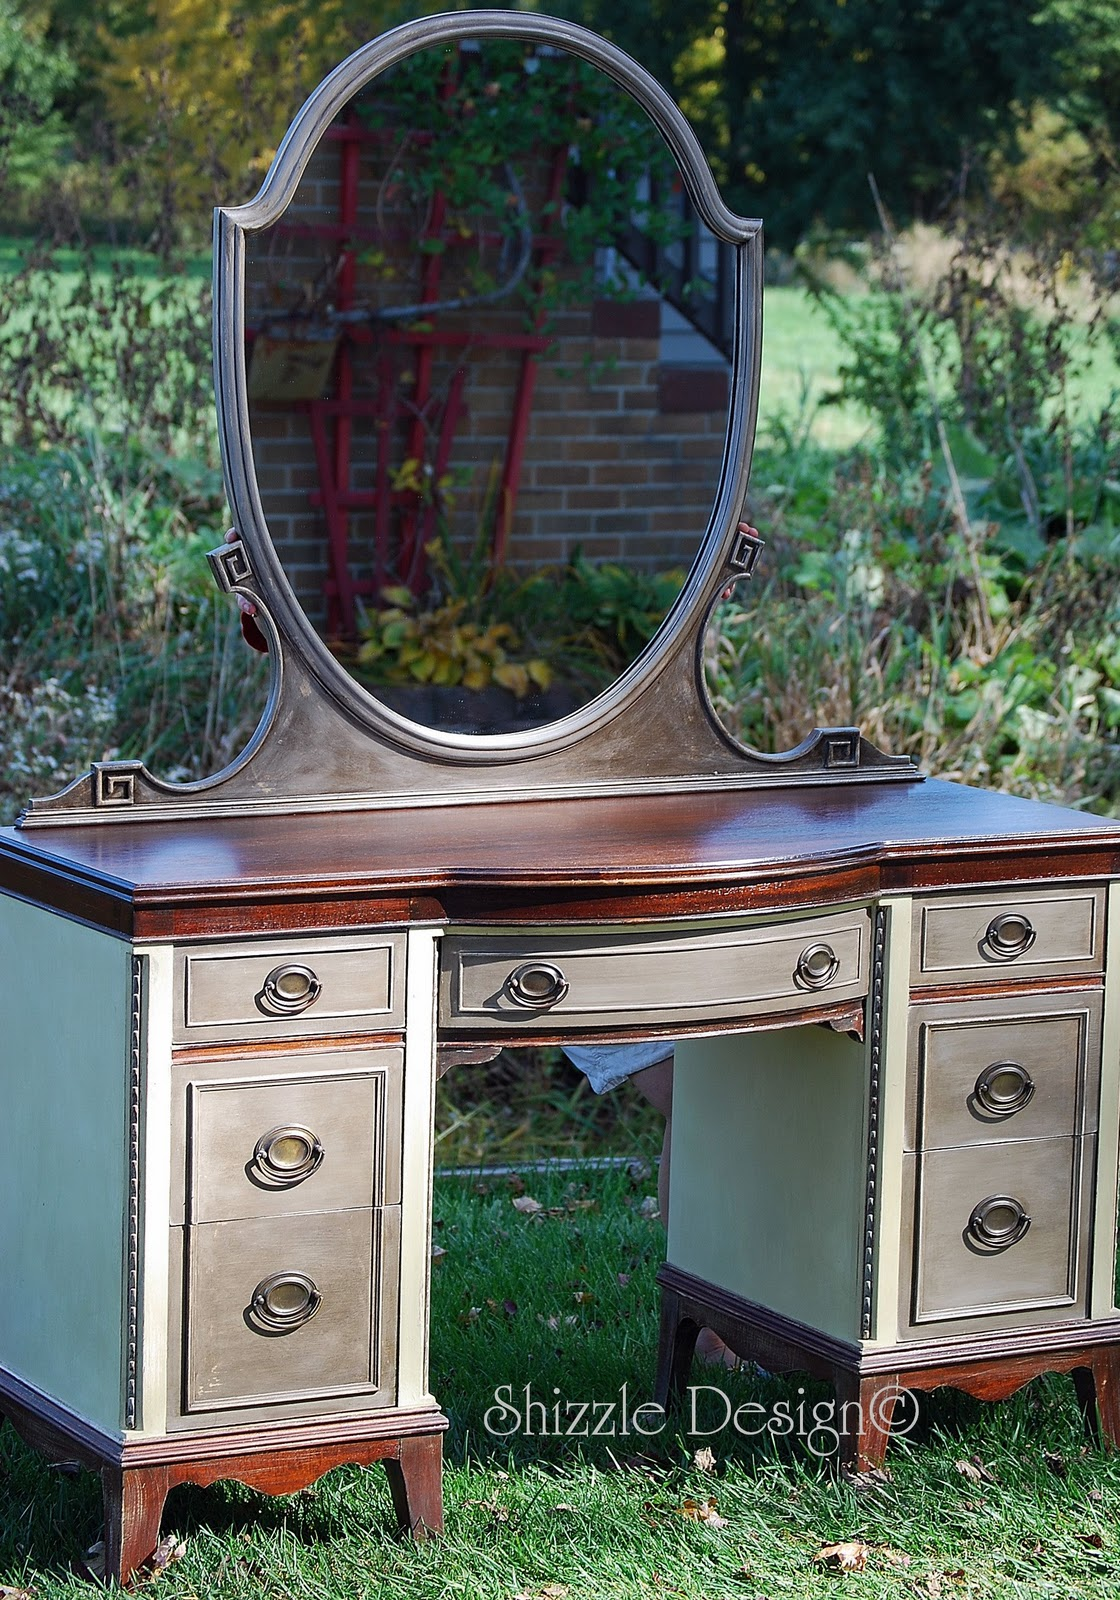 Shizzle Design | Antique Vanity and Gentleman's Chest in ASCP